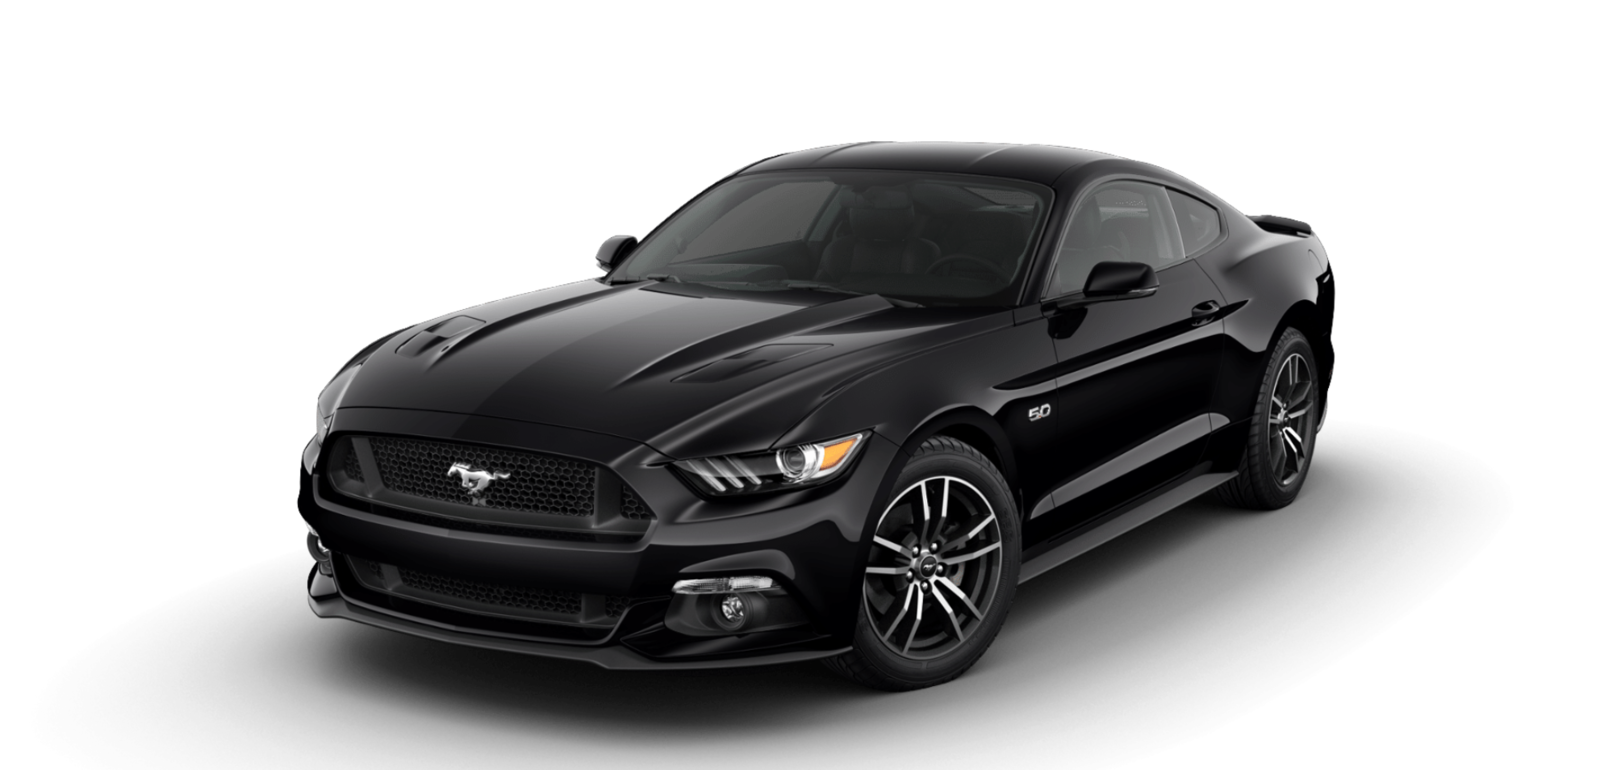 ford mustang questions my first car is gonna be a 2016 mustang gt i don 39 t know to get automa. Black Bedroom Furniture Sets. Home Design Ideas